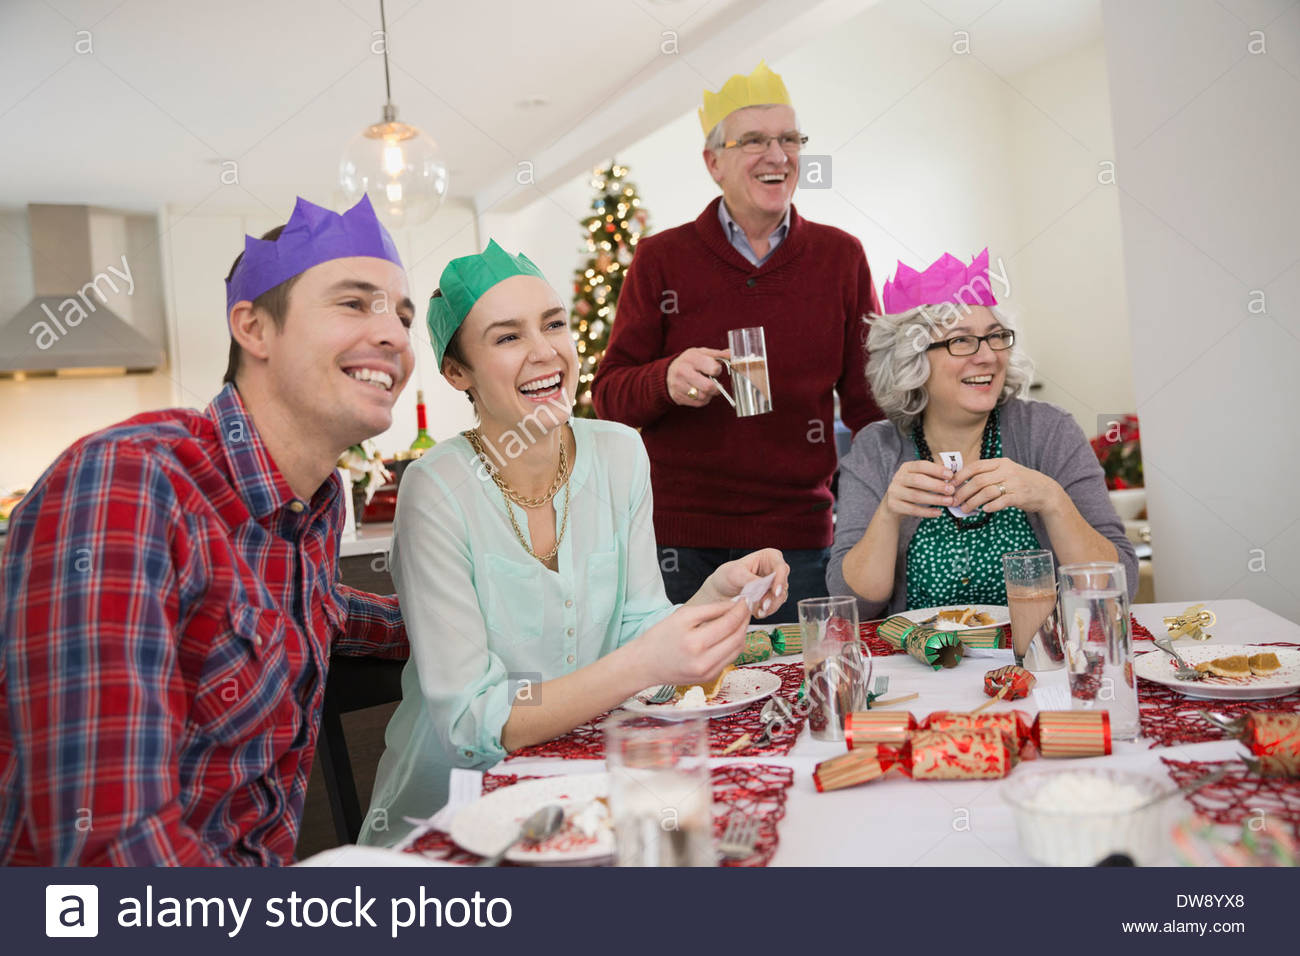 Family enjoying time together after Christmas dinner - Stock Image